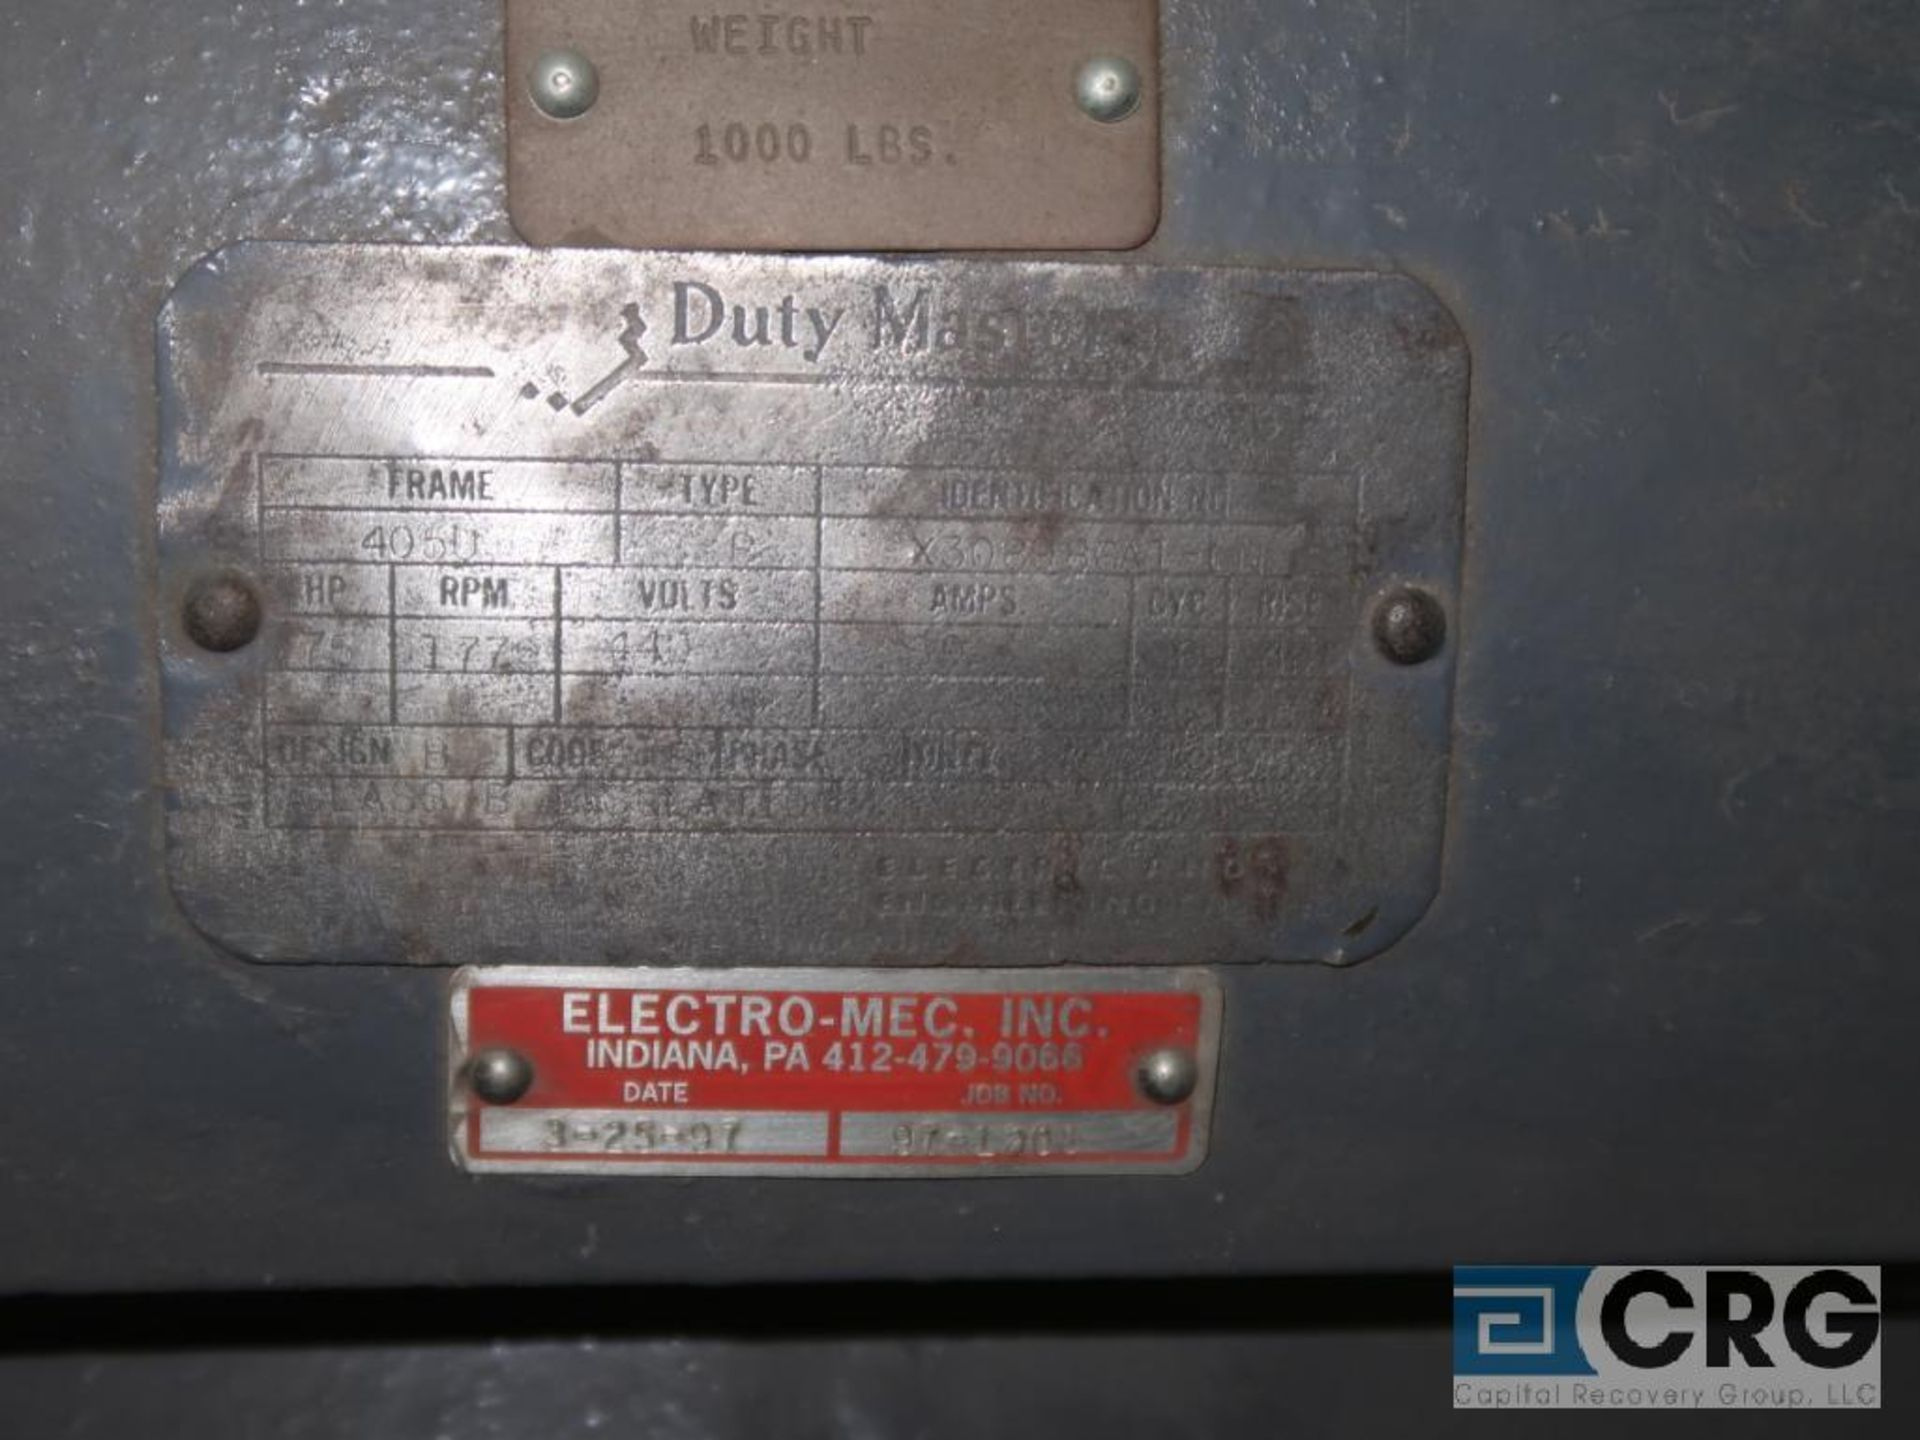 Reliance Duty Master A-C motor, 75 HP, 1,770 RPMs, 440 volt, 3 ph., 405U frame (Finish Building) - Image 2 of 2